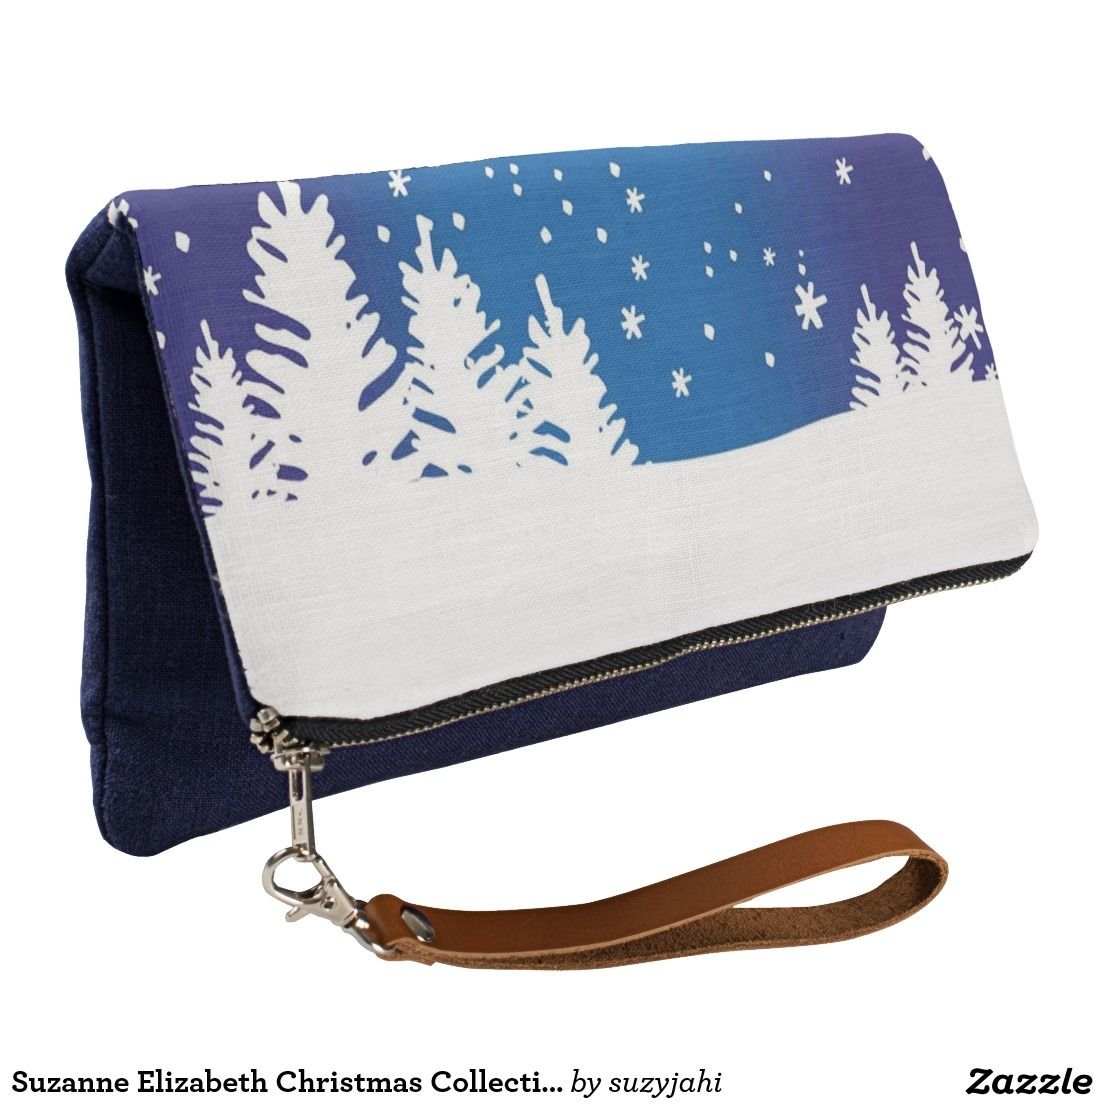 Suzanne Elizabeth Christmas Collection Clutch